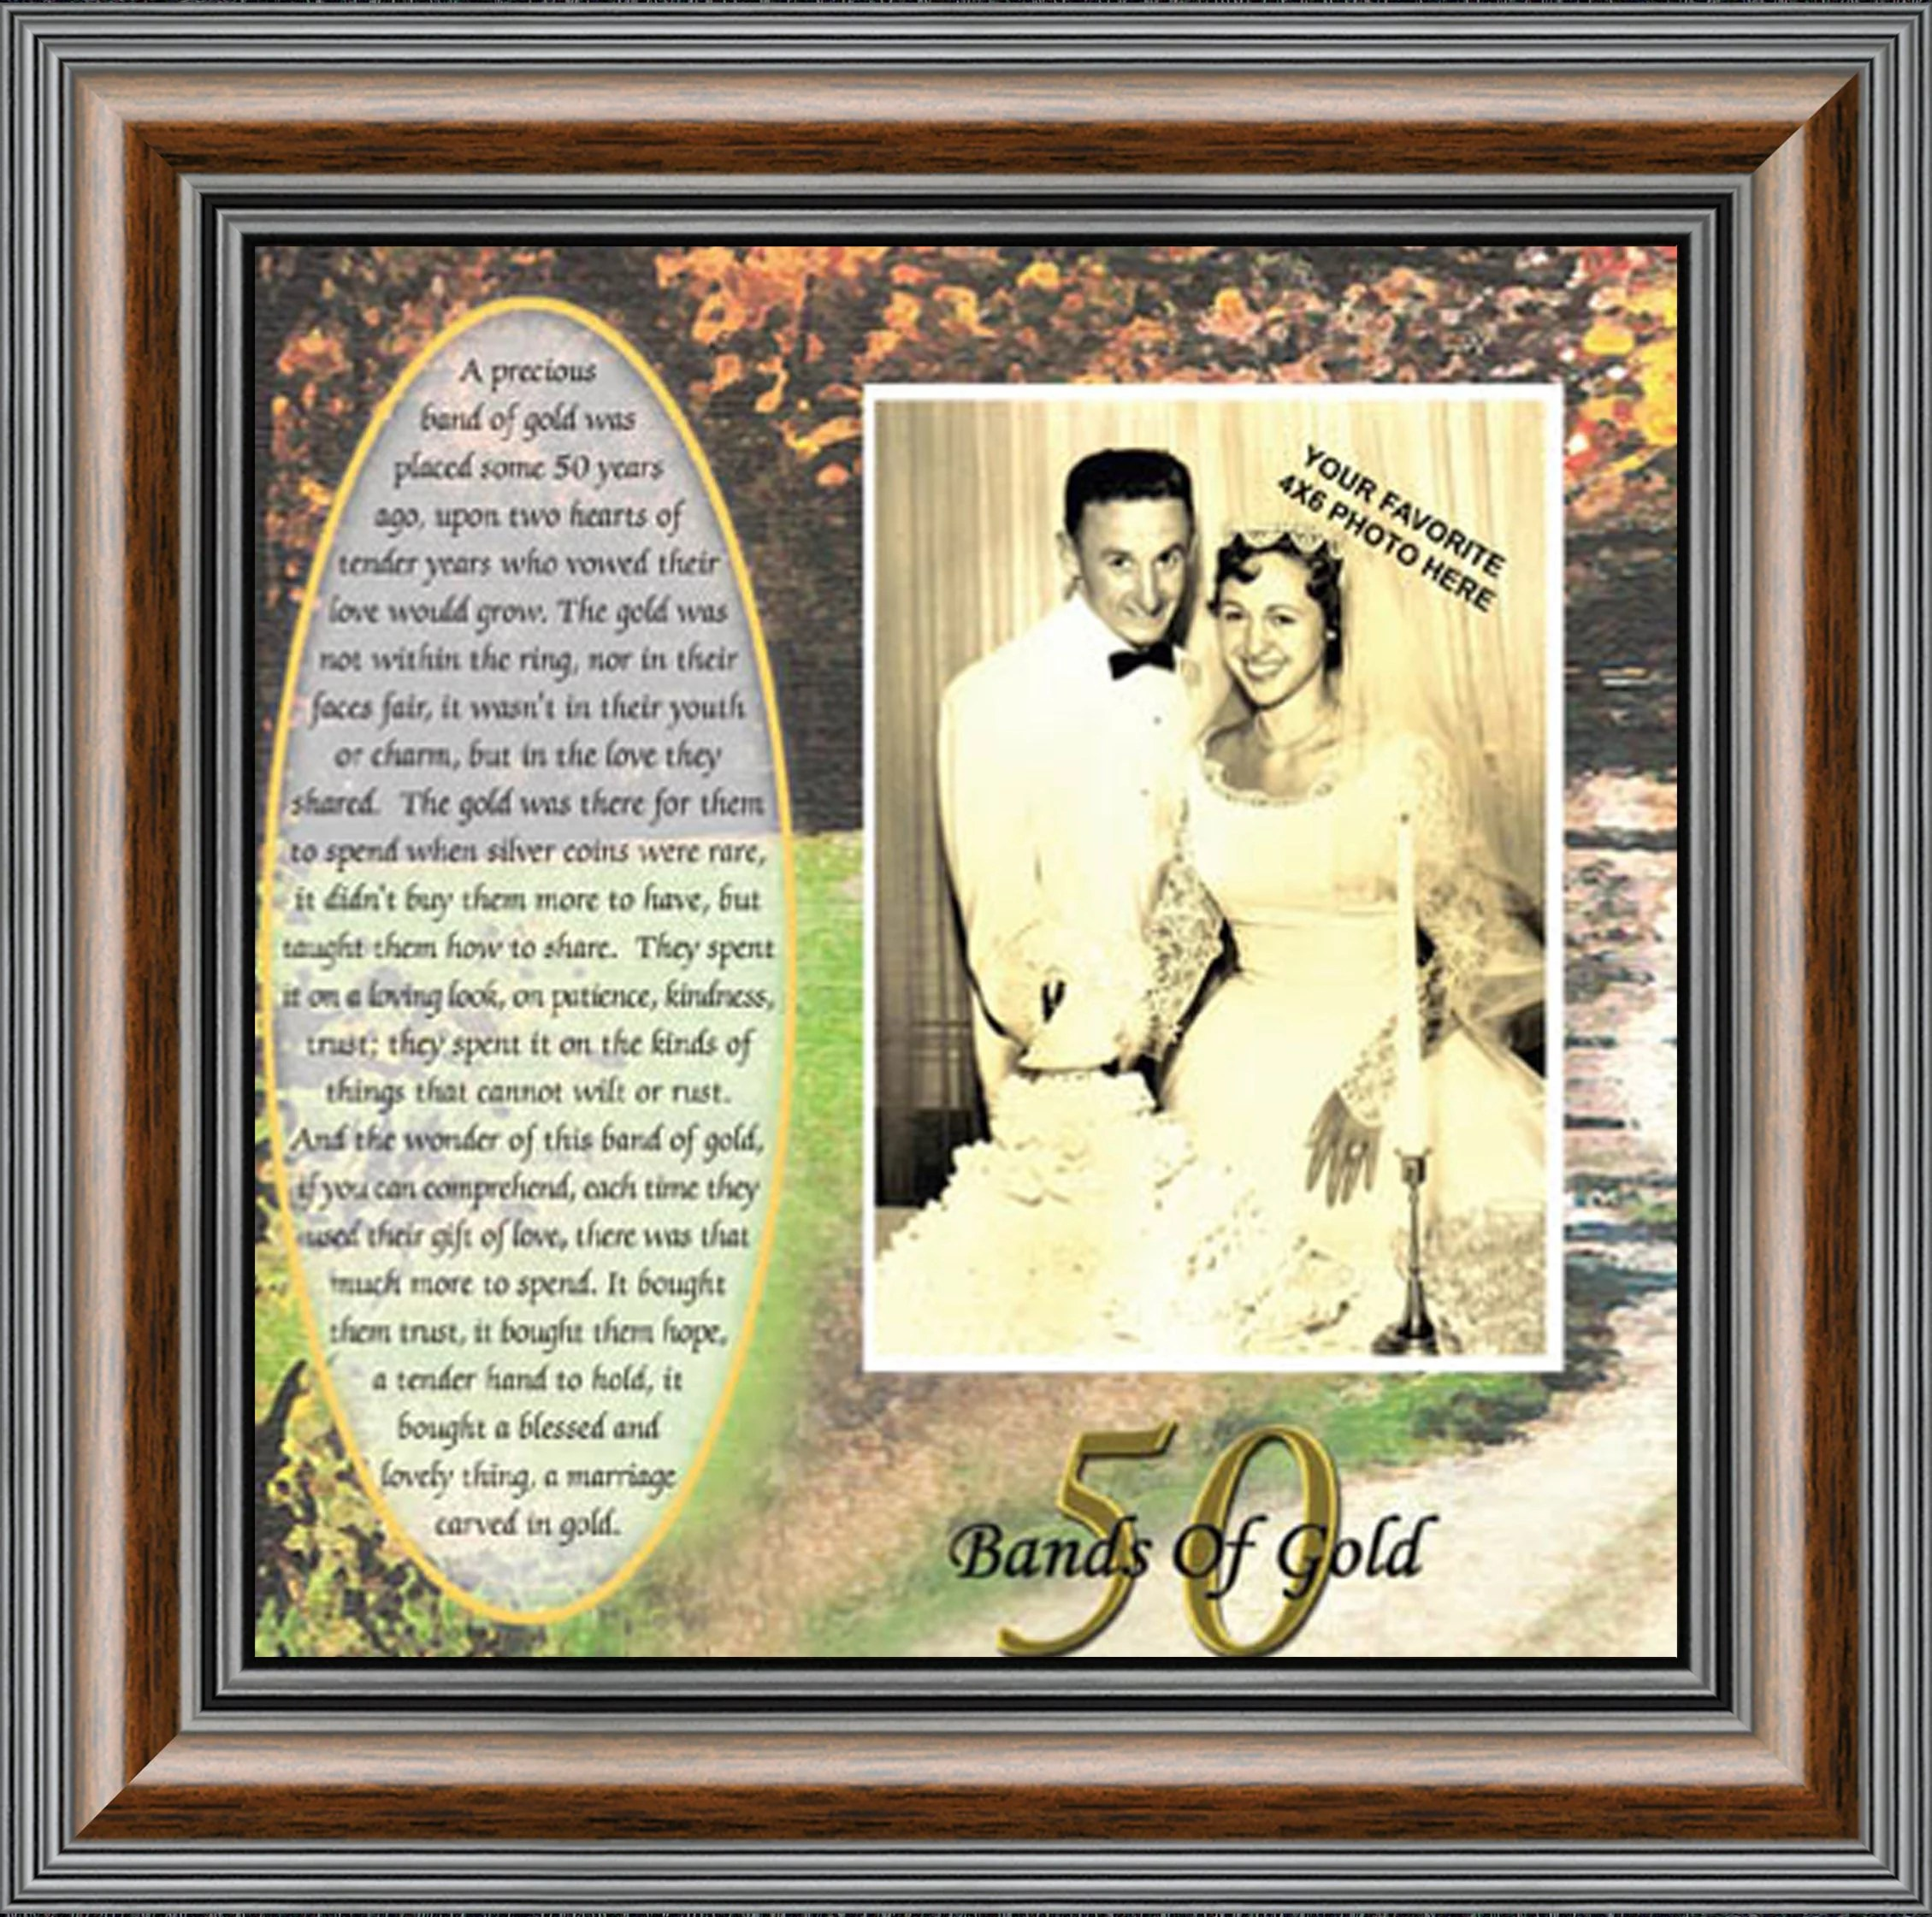 50th Wedding Anniversary Gifts For Parents Or Couples 50th Anniversary Decorations For Party Golden Anniversary 50 Year Gifts Gift To Add To A 50th Anniversary Card 6779 Walmart Com Walmart Com